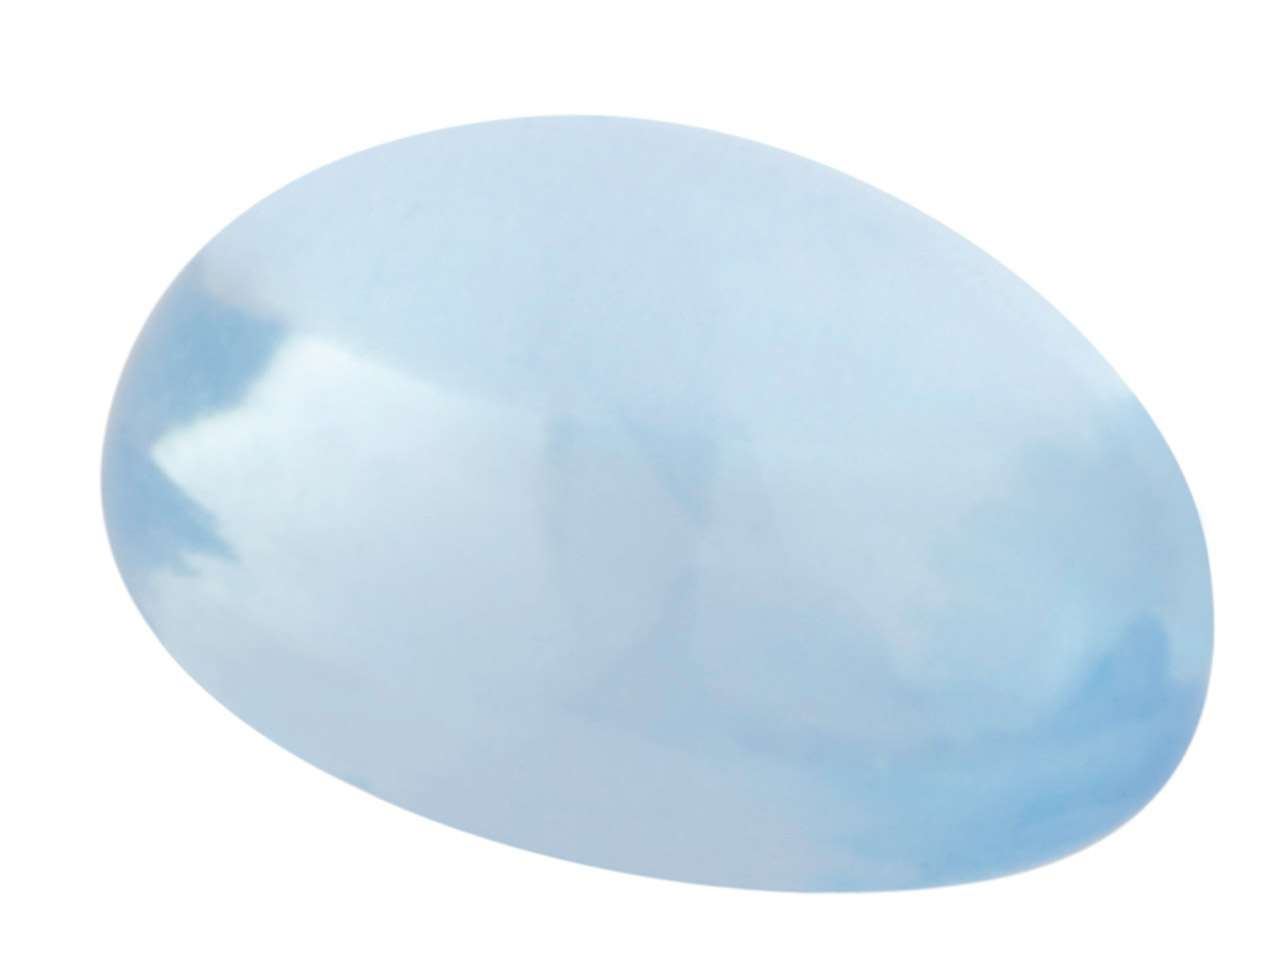 London Blue Topaz, Oval Cabochon   7x5mm, Treated